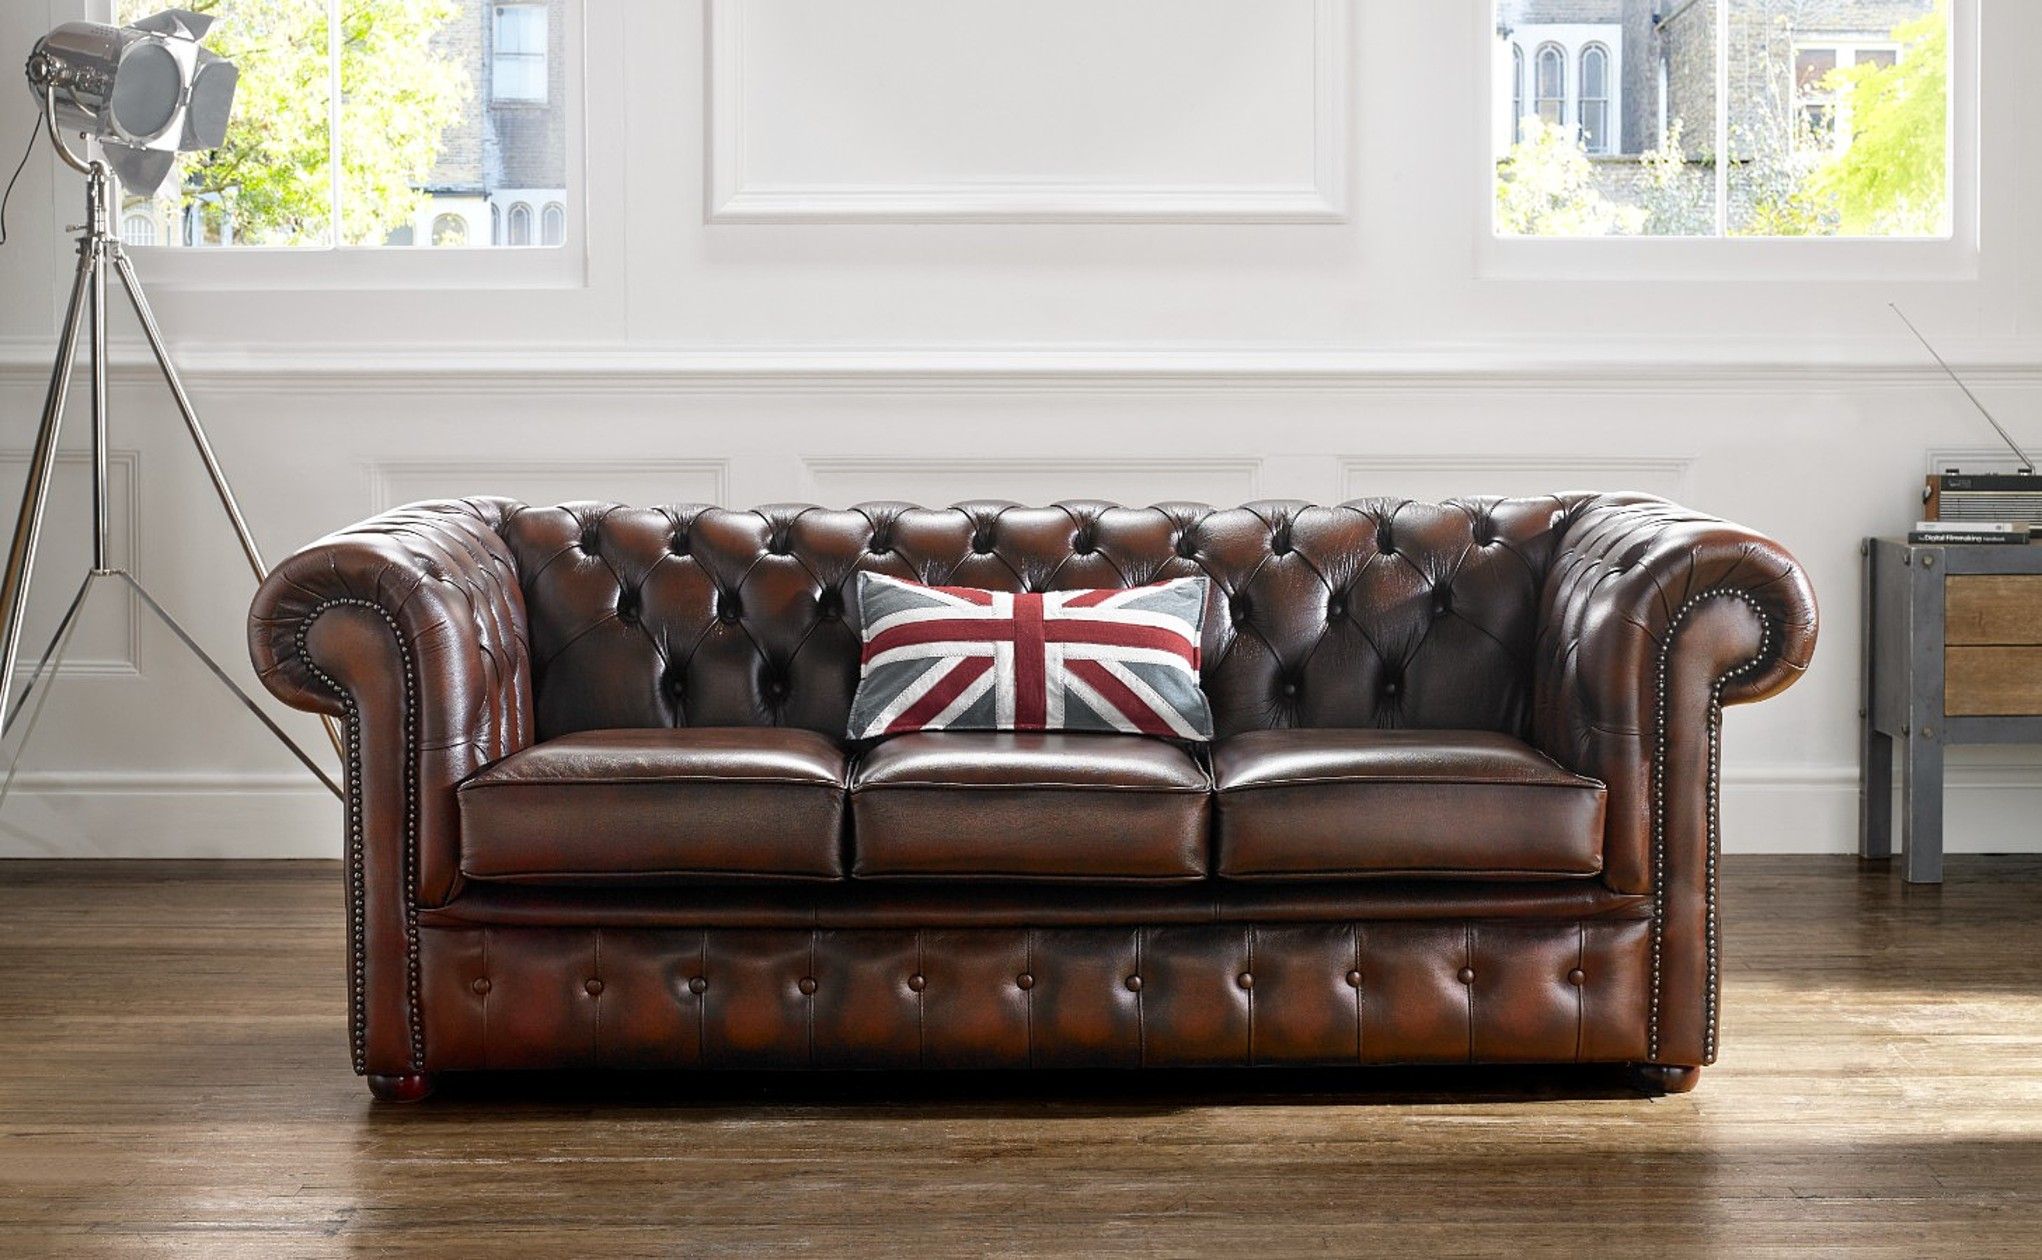 The Classic Chesterfield Sofa